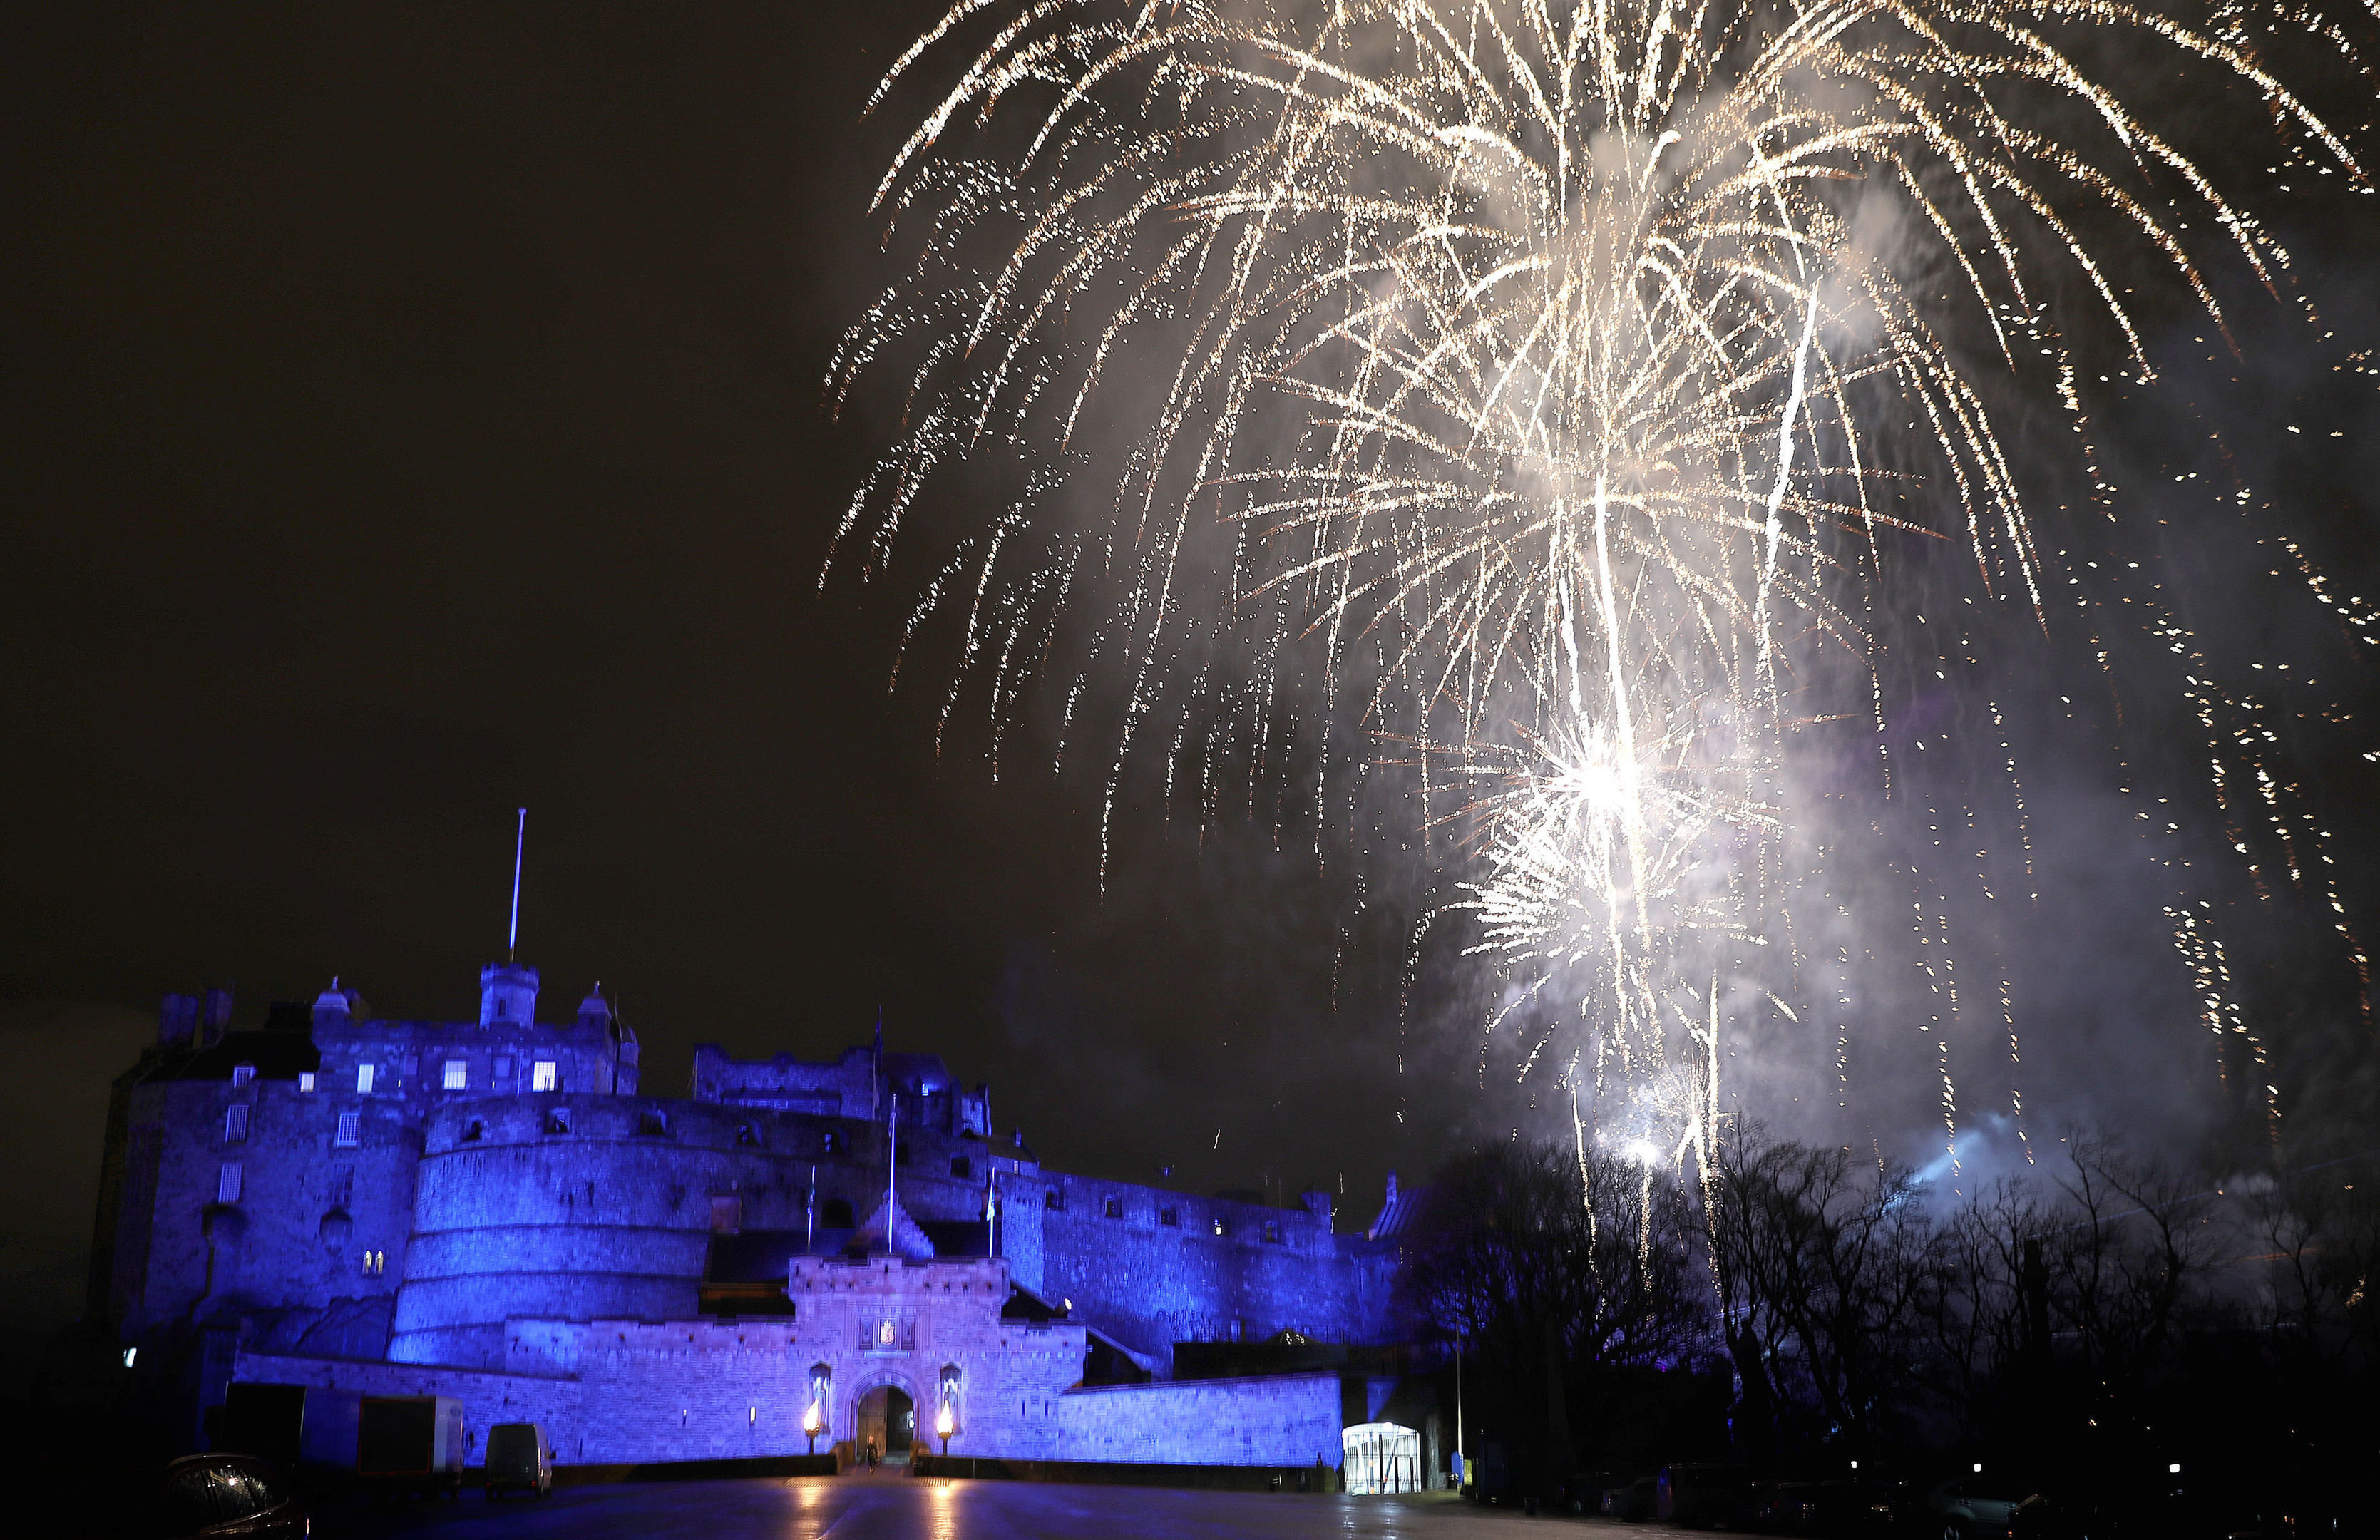 Fireworks light up the sky during the Hogmanay New Year celebrations in Edinburgh (Andrew Milligan/PA Wire)